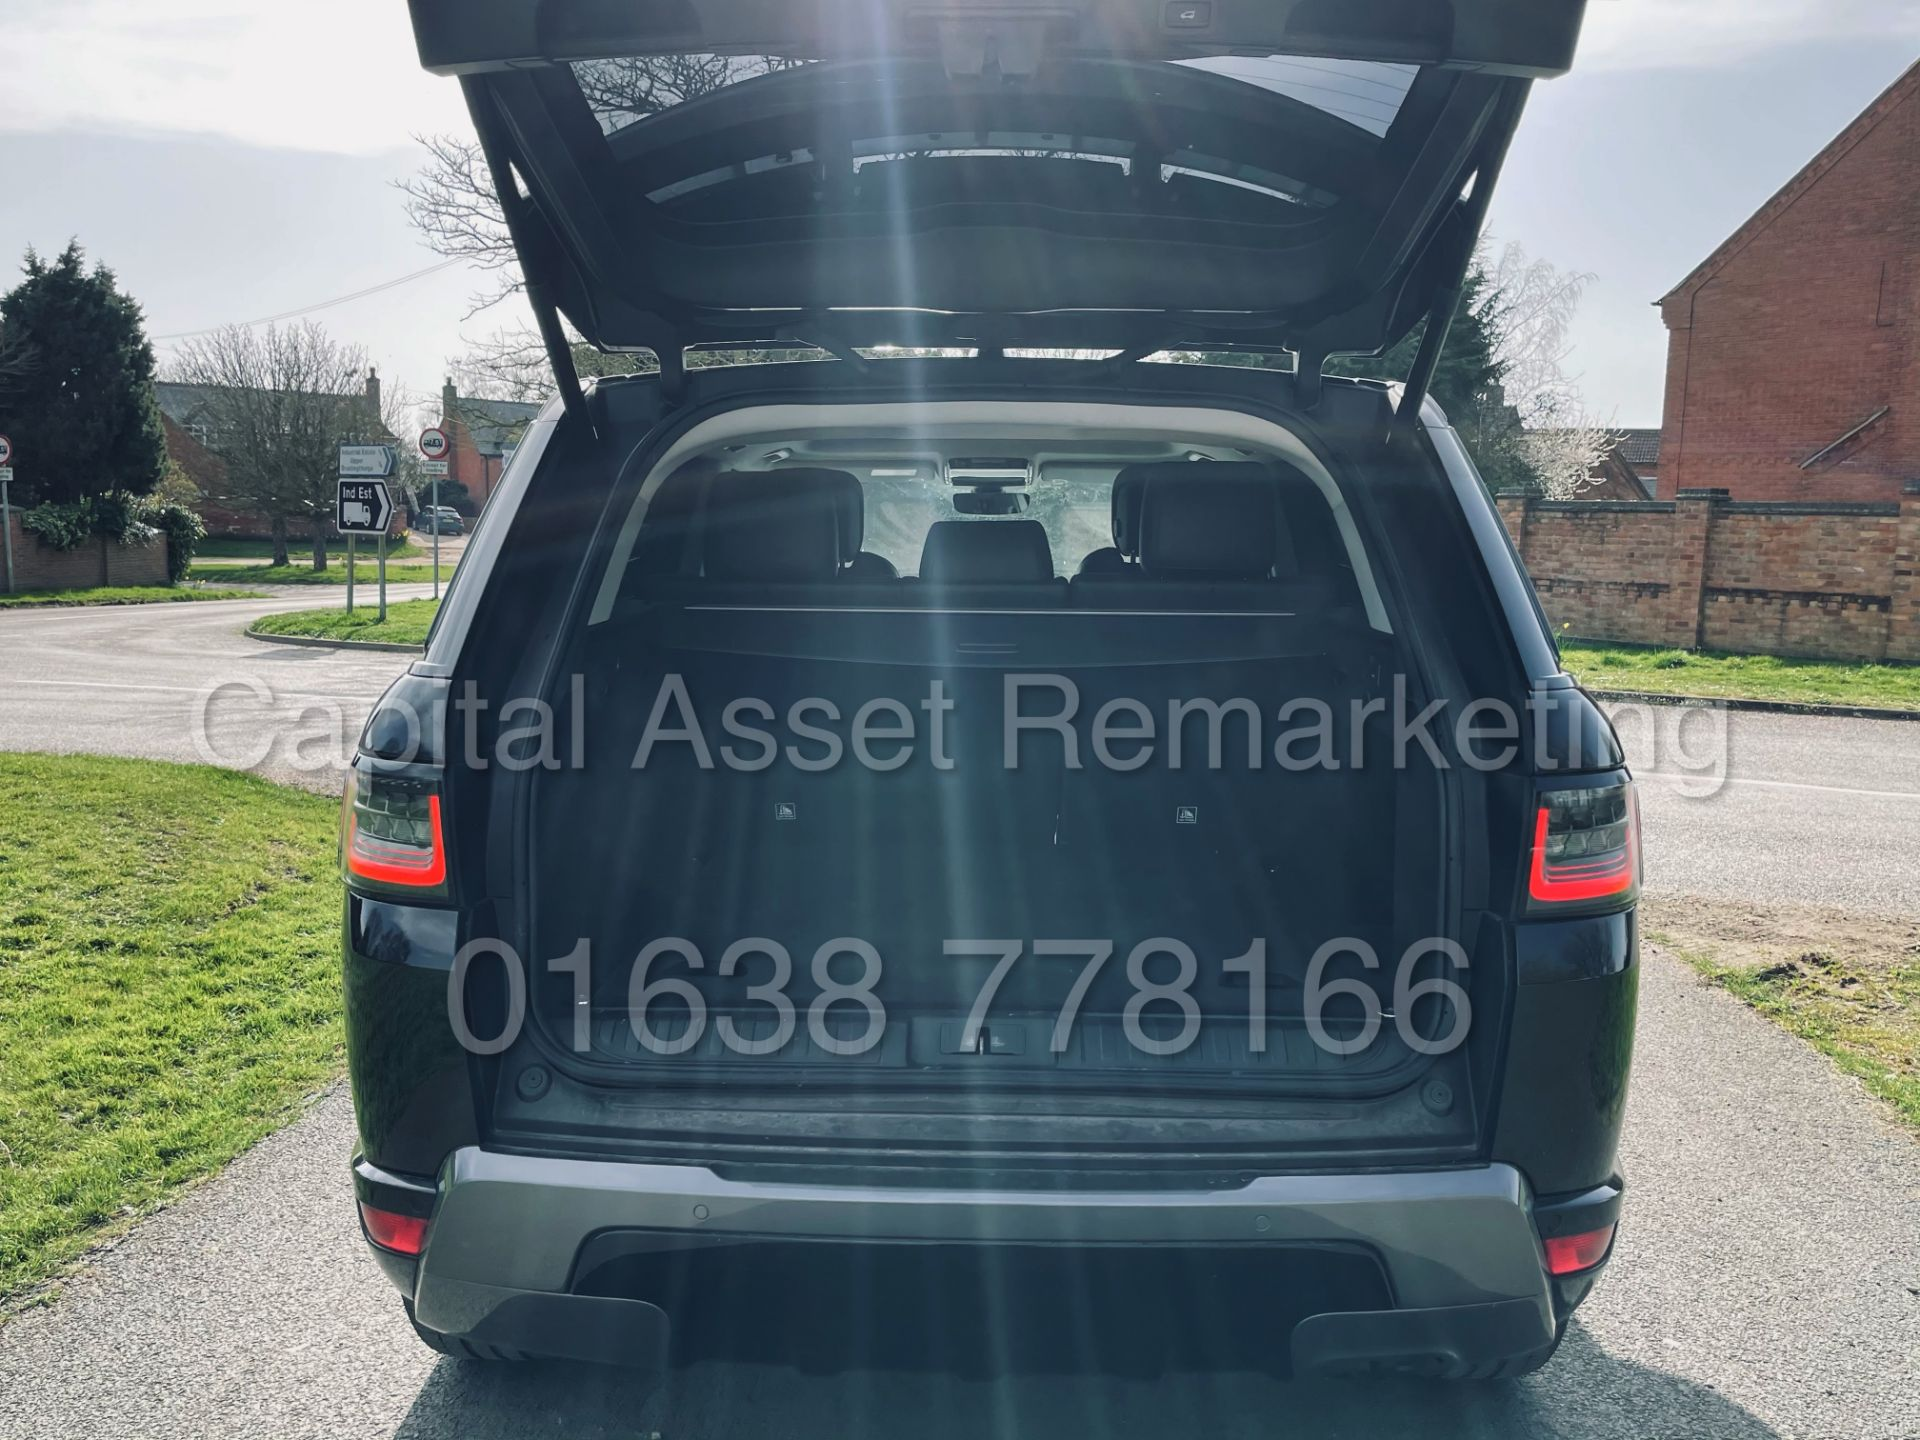 (On Sale) RANGE ROVER SPORT *HSE EDITION* SUV (2018 - NEW MODEL) '8 SPEED AUTO' *FULLY LOADED* - Image 28 of 55